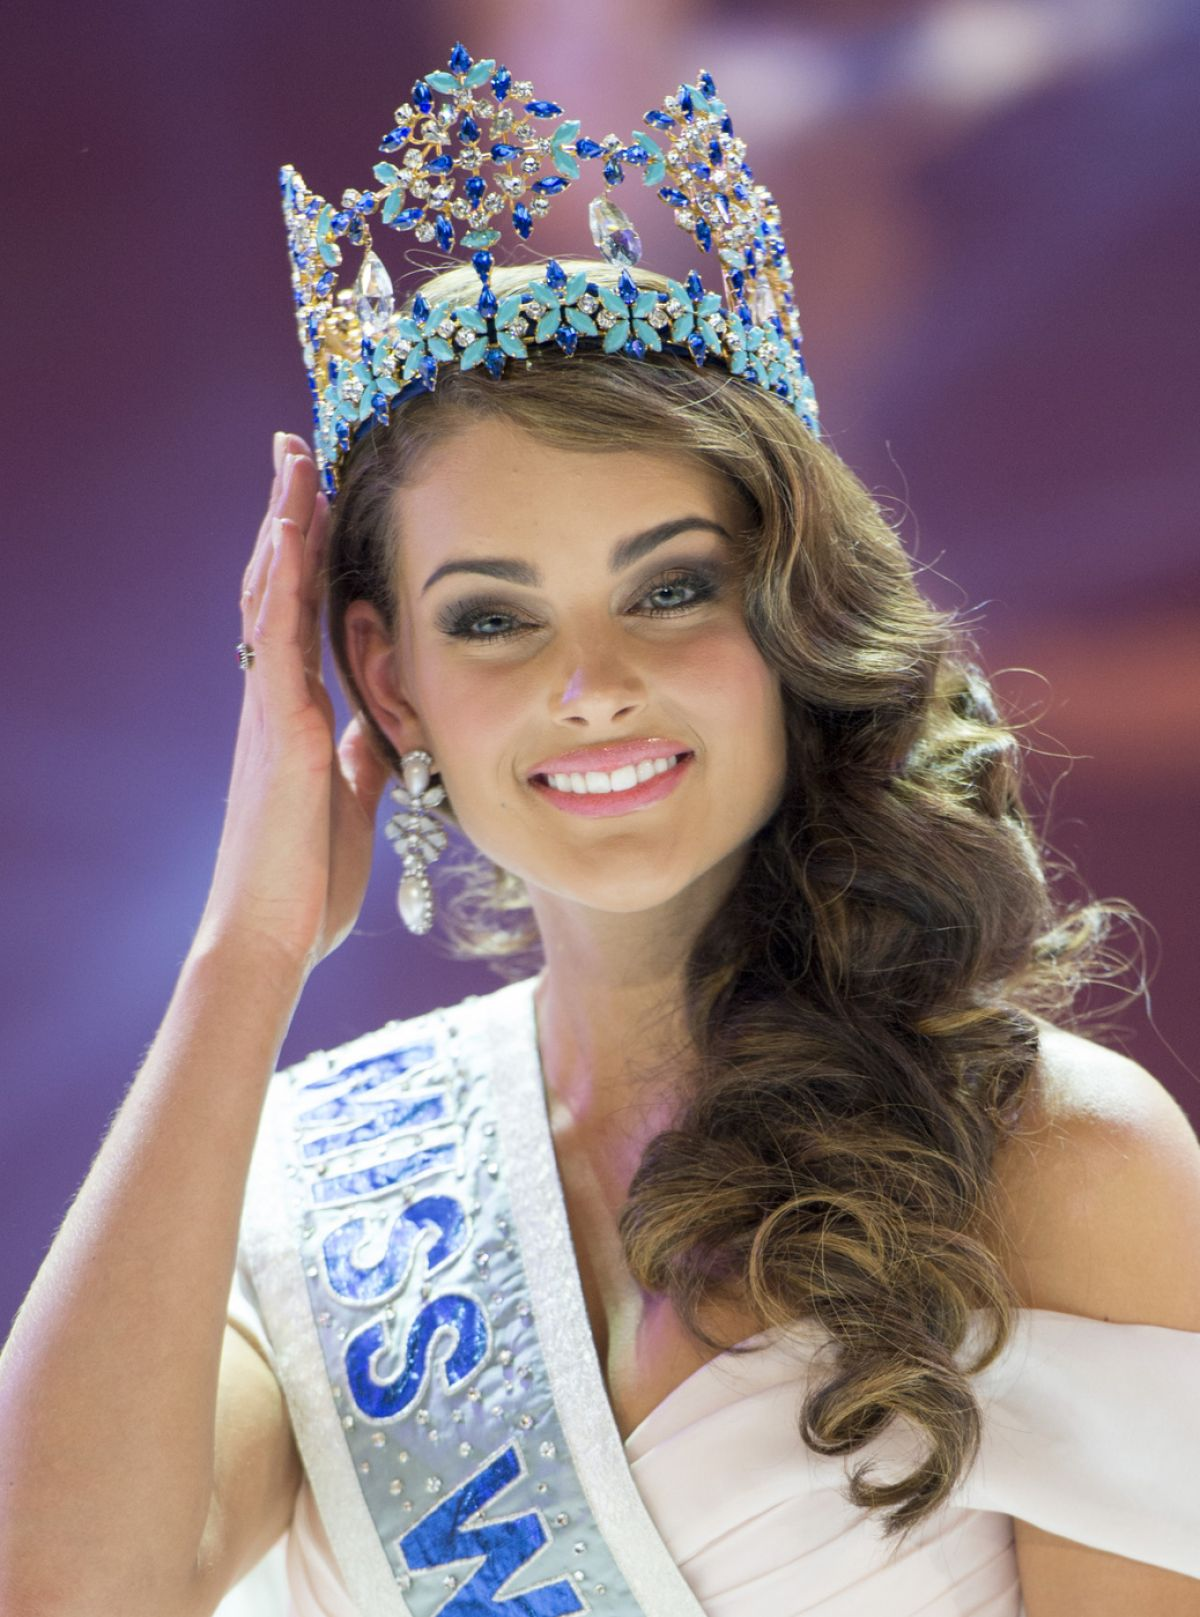 ROLENE STRUASS Crowned Miss World 2014 at the Ceremony in London